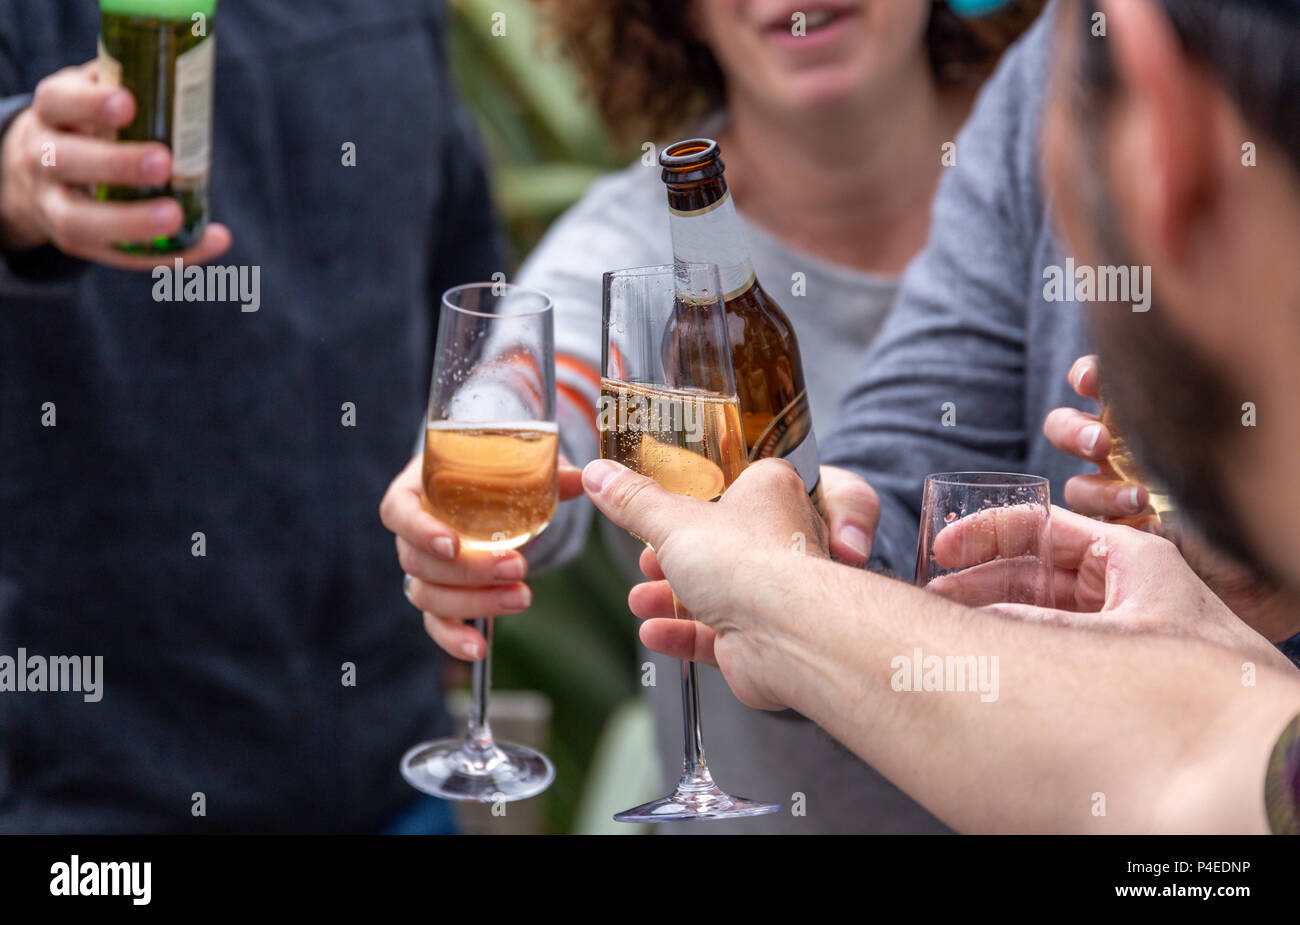 Friends toasting with drinks (lager and prosecco) at an outside social gathering Stock Photo